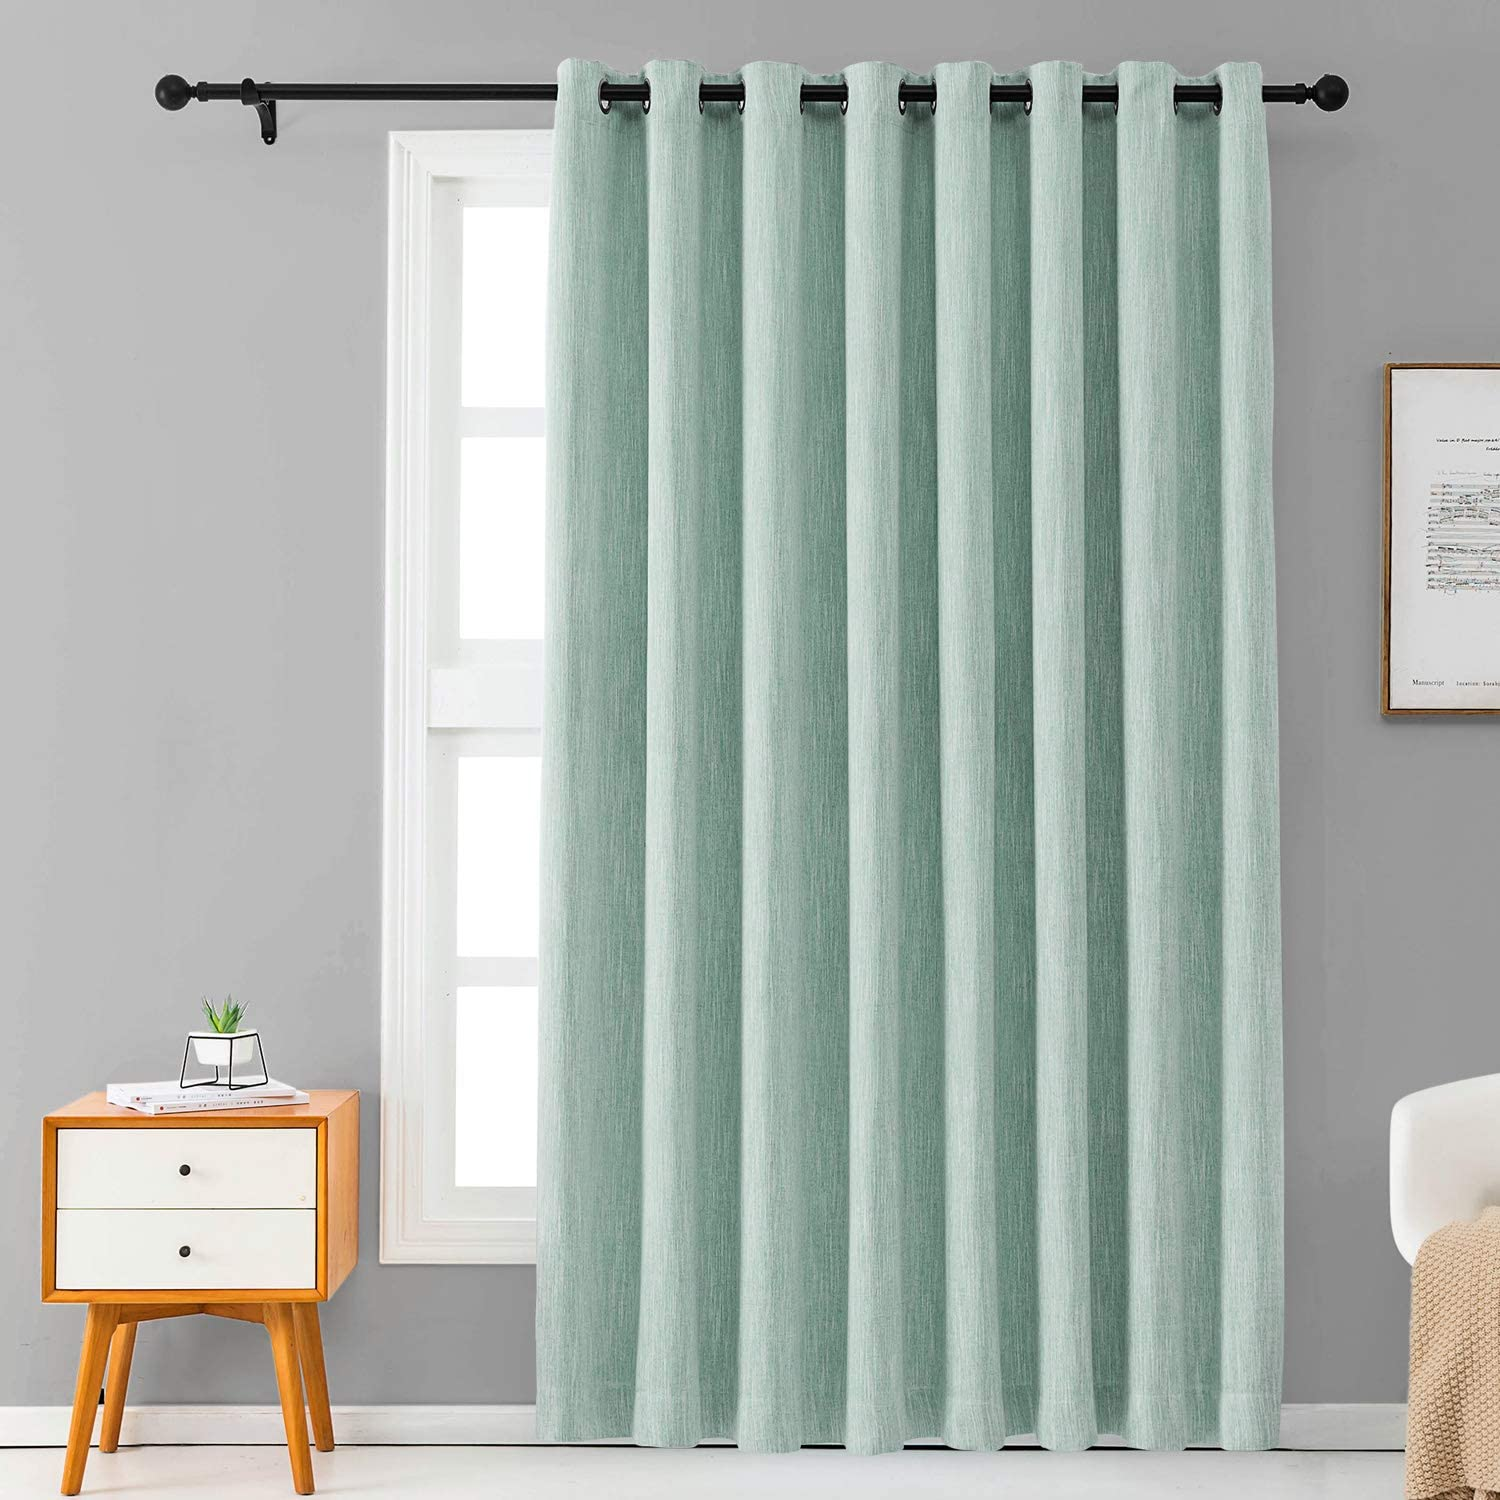 Melodieux Elegant Cotton Wide Blackout Curtains for Sliding Glass Door Living Room Thermal Insulated Grommet Drapes, 100 by 84 Inch, Blue (1 Panel)